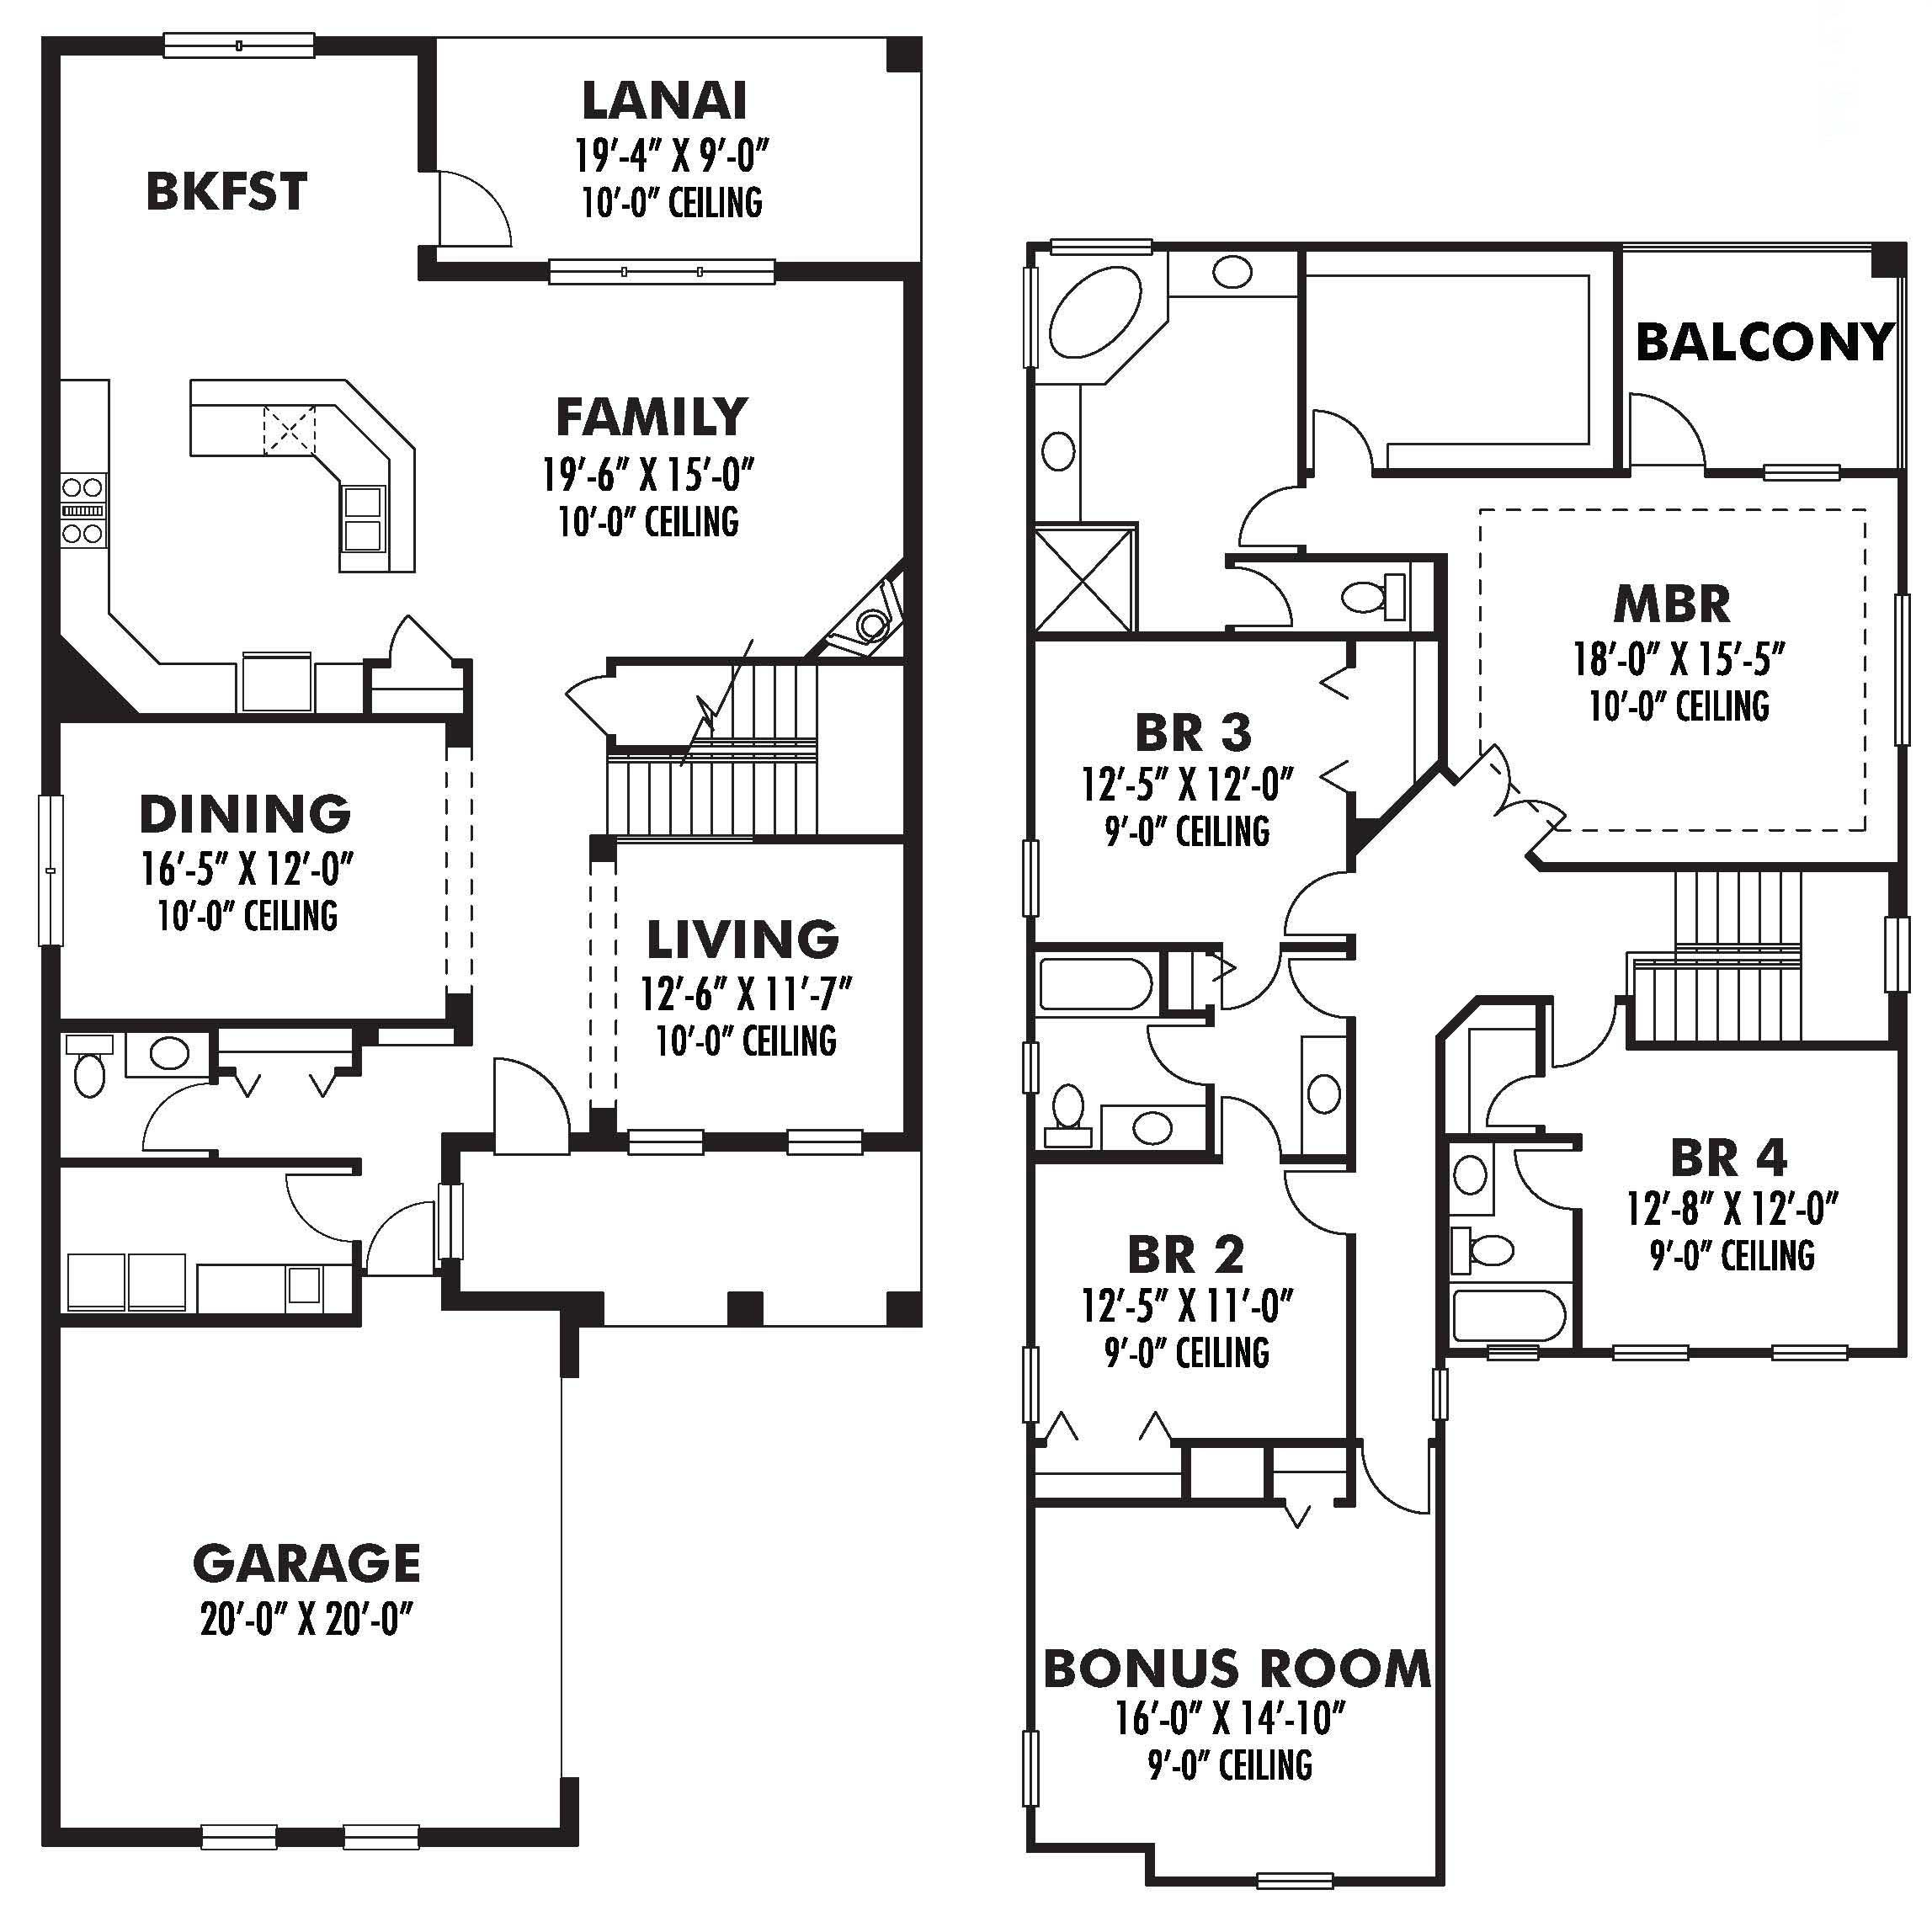 Mediterranean House Plan 2 Story Tuscan Style Home Floor Plan: Tuscan House Plans